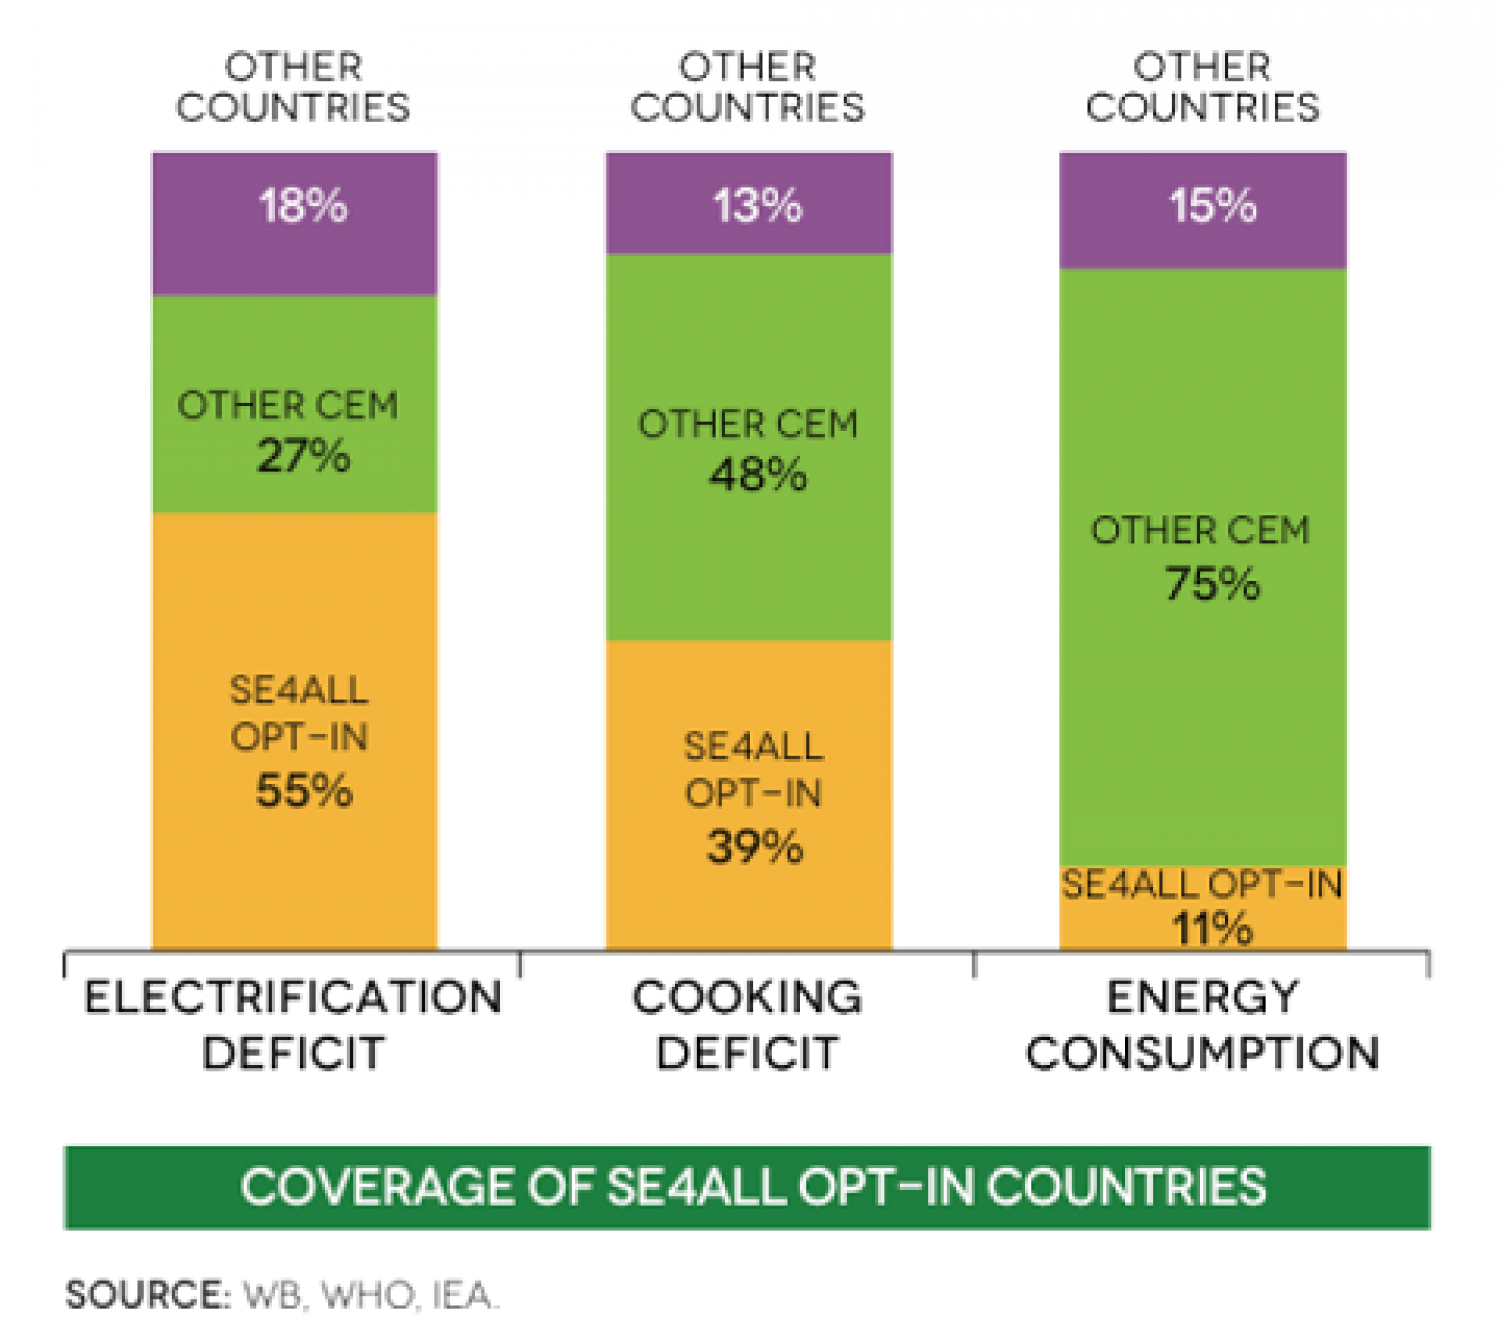 Coverage of SE4ALL OPT-IN countries Infographic